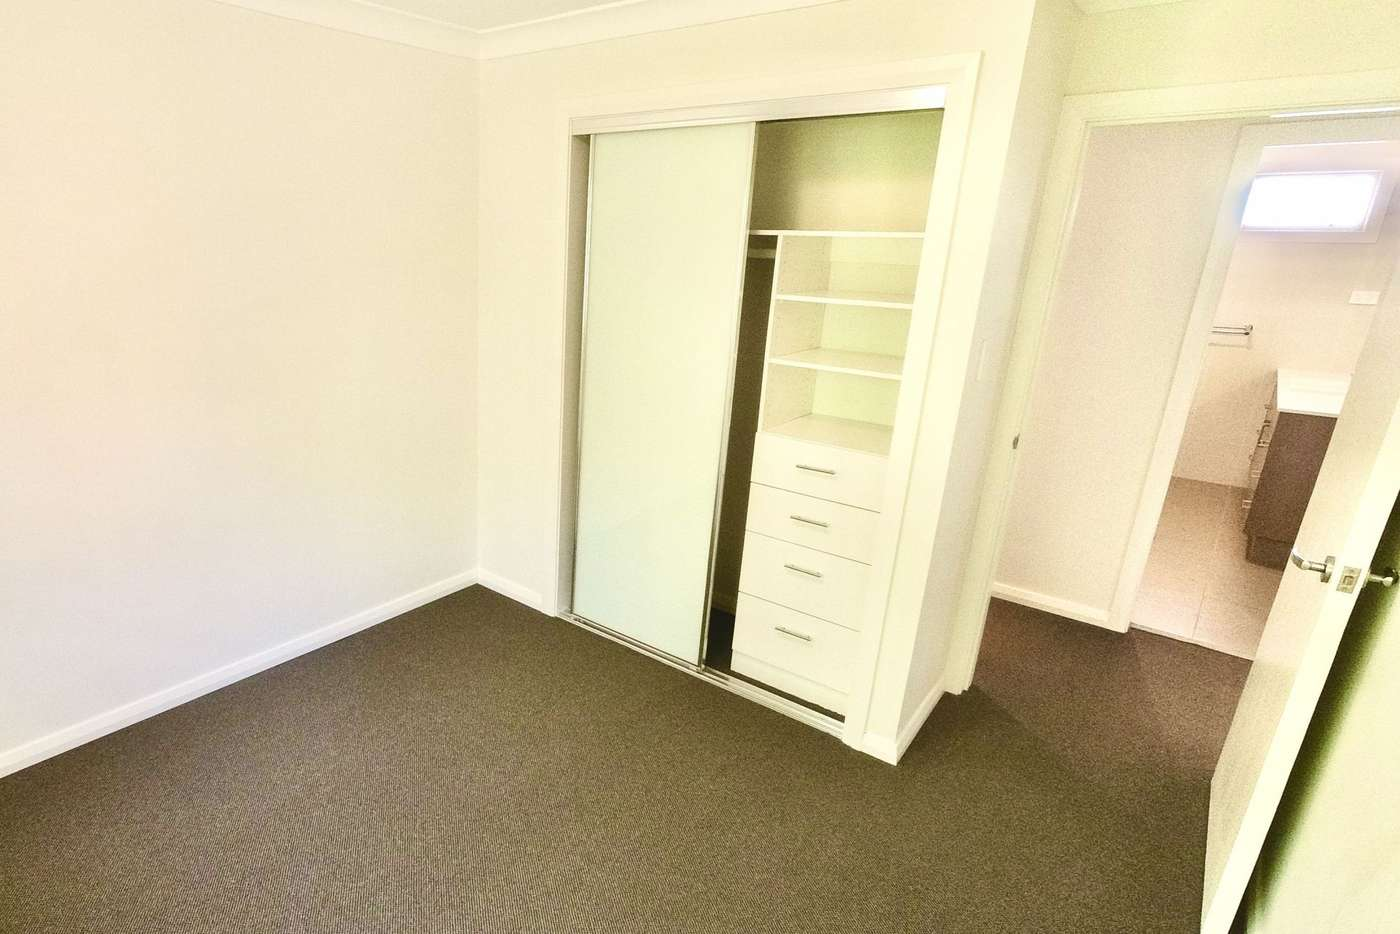 Seventh view of Homely townhouse listing, 3/231 Gipps Road, Keiraville NSW 2500